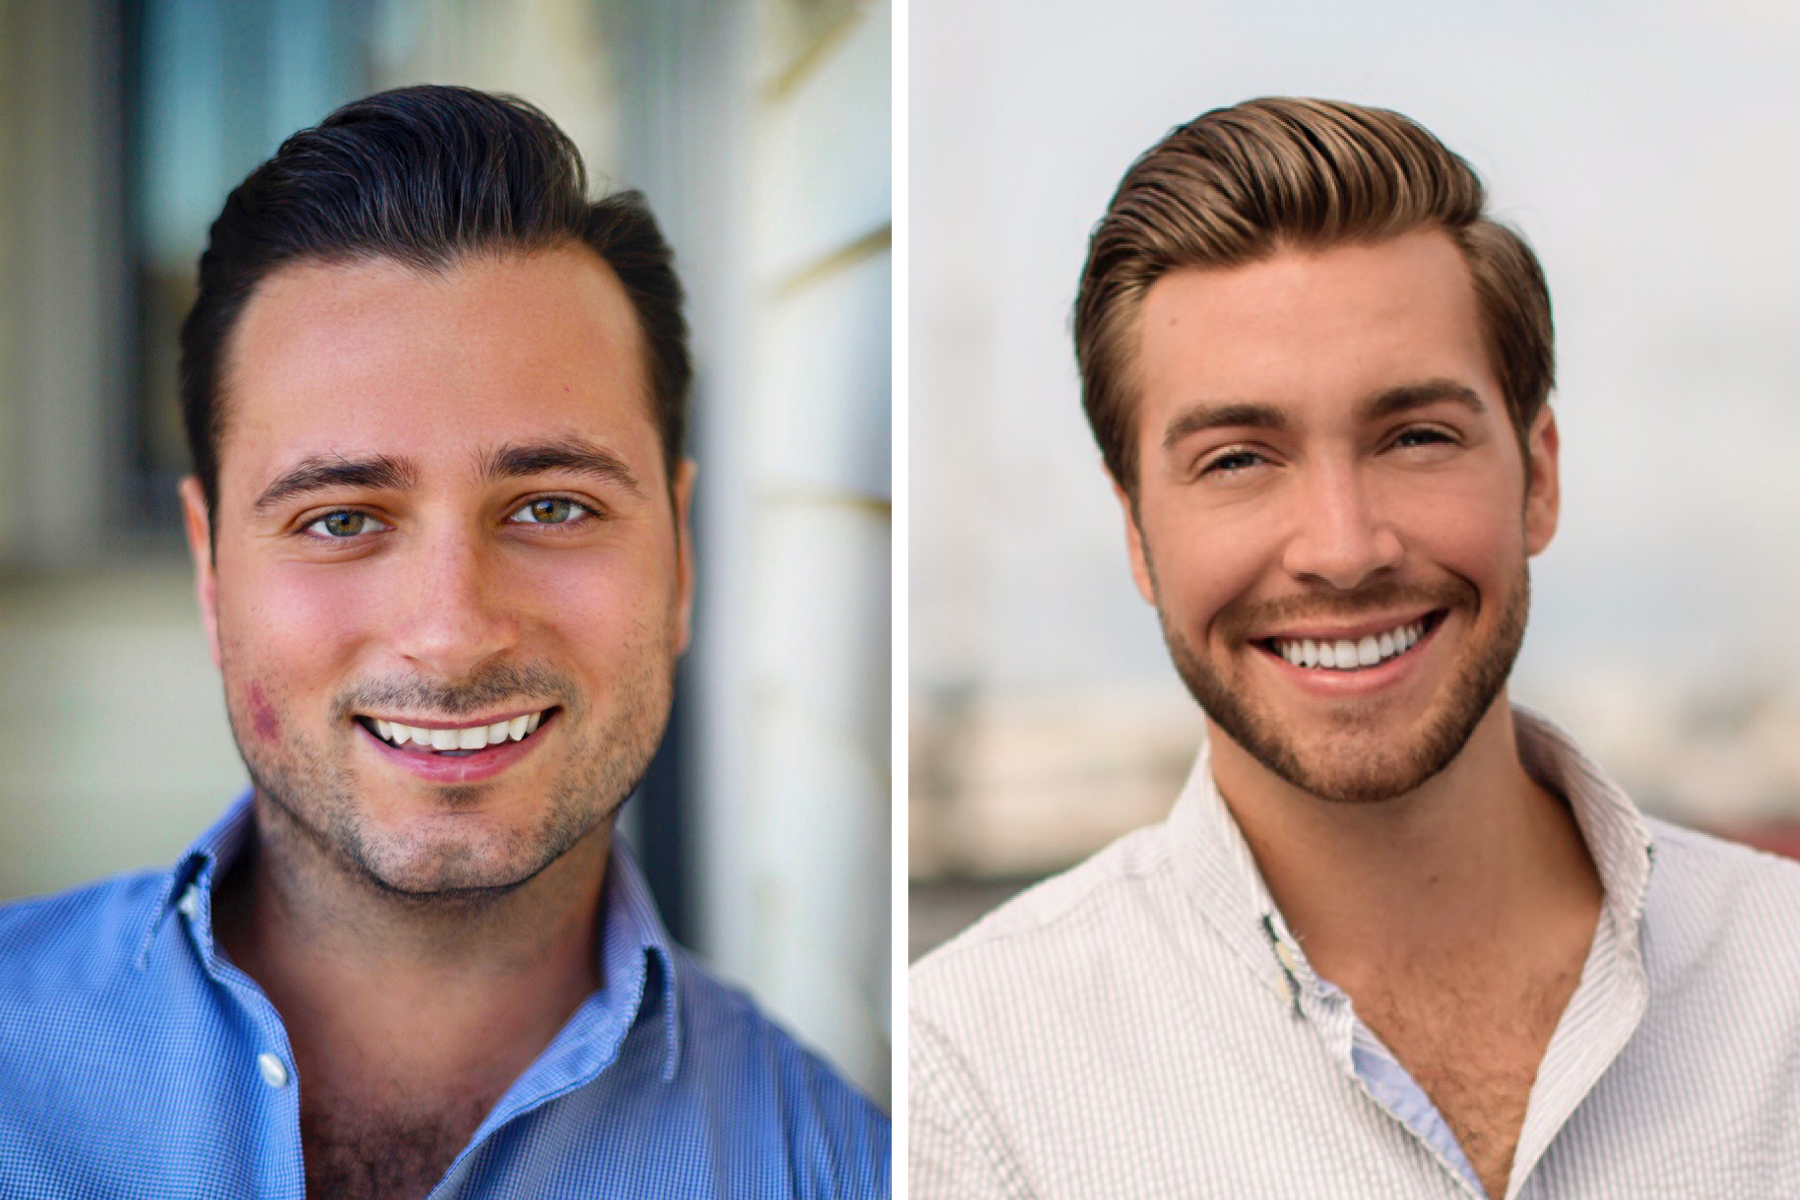 LILA DELMAN REAL ESTATE NAMES RYAN ELSMAN AS CHIEF OPERATING OFFICER AND BRANDYN BRUNELLE AS CHIEF CREATIVE OFFICER